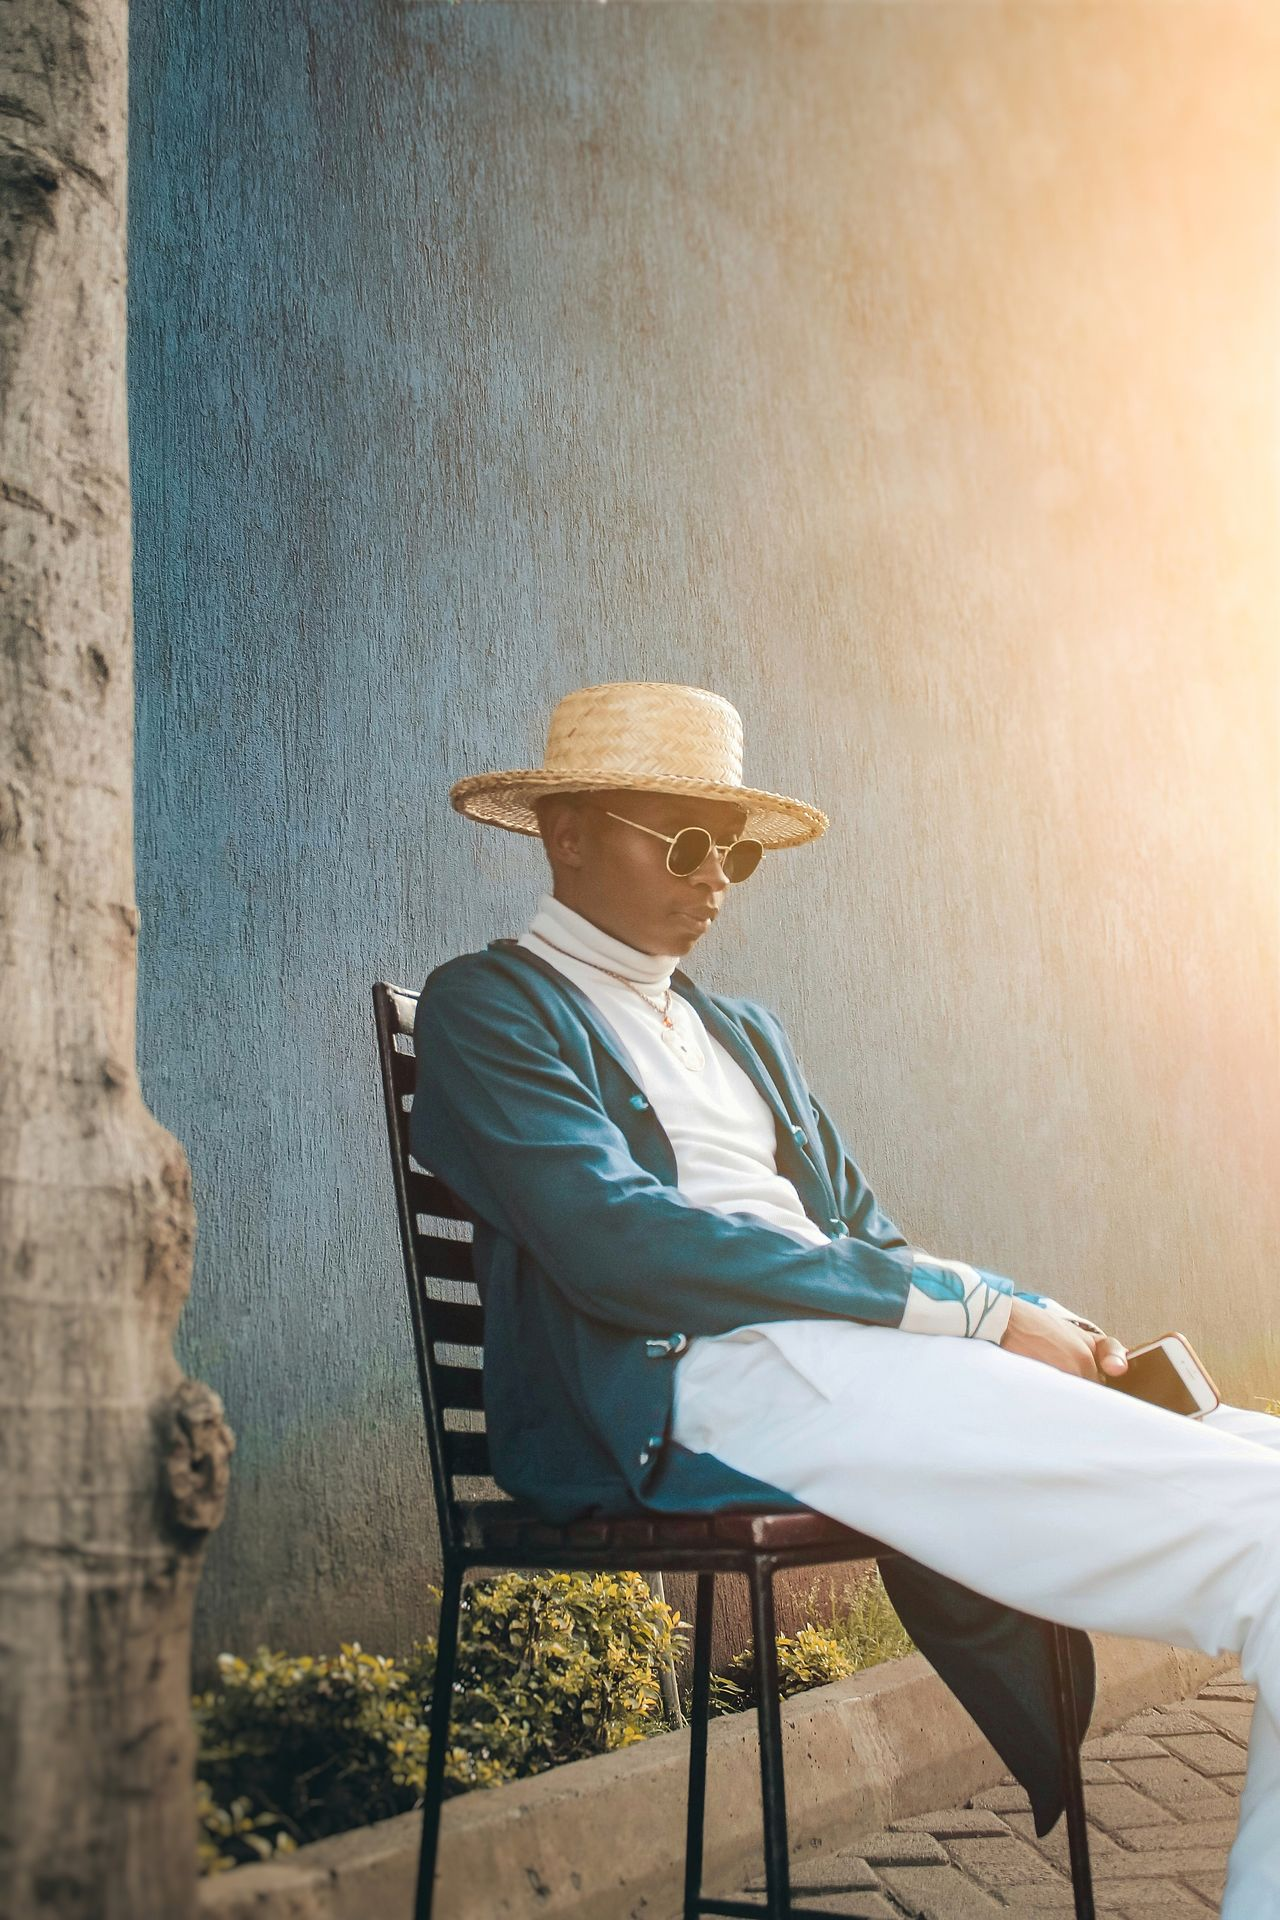 Man wearing hat while sitting on chair